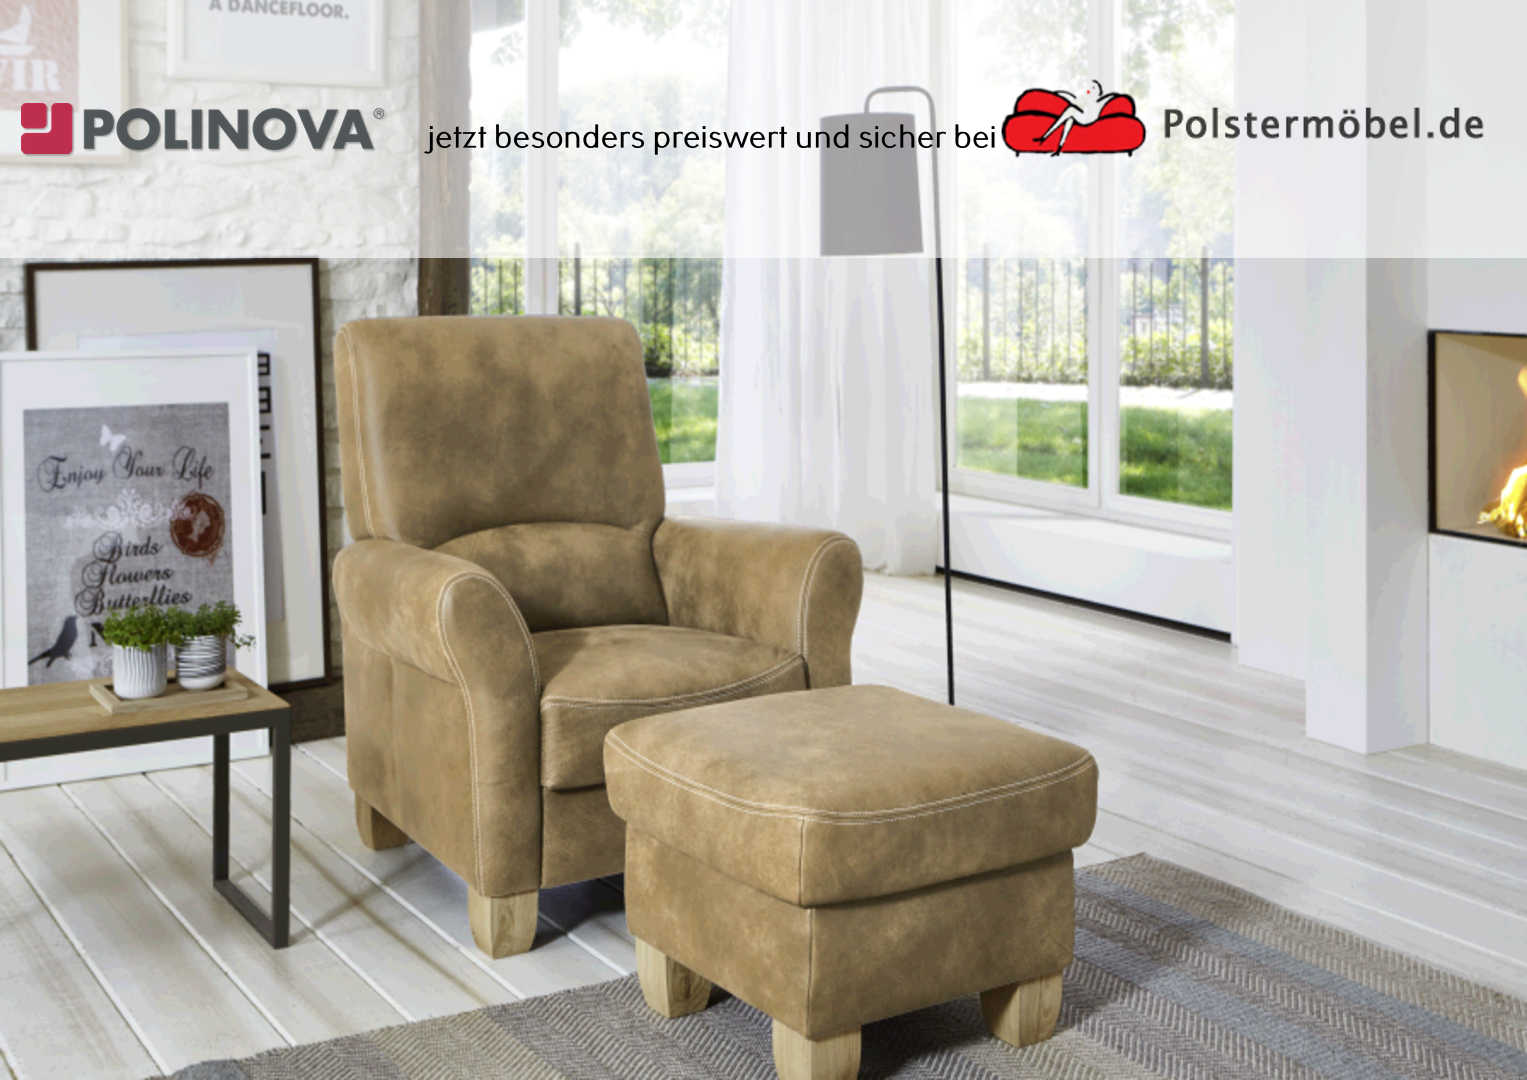 polinova landart sessel l polsterm. Black Bedroom Furniture Sets. Home Design Ideas